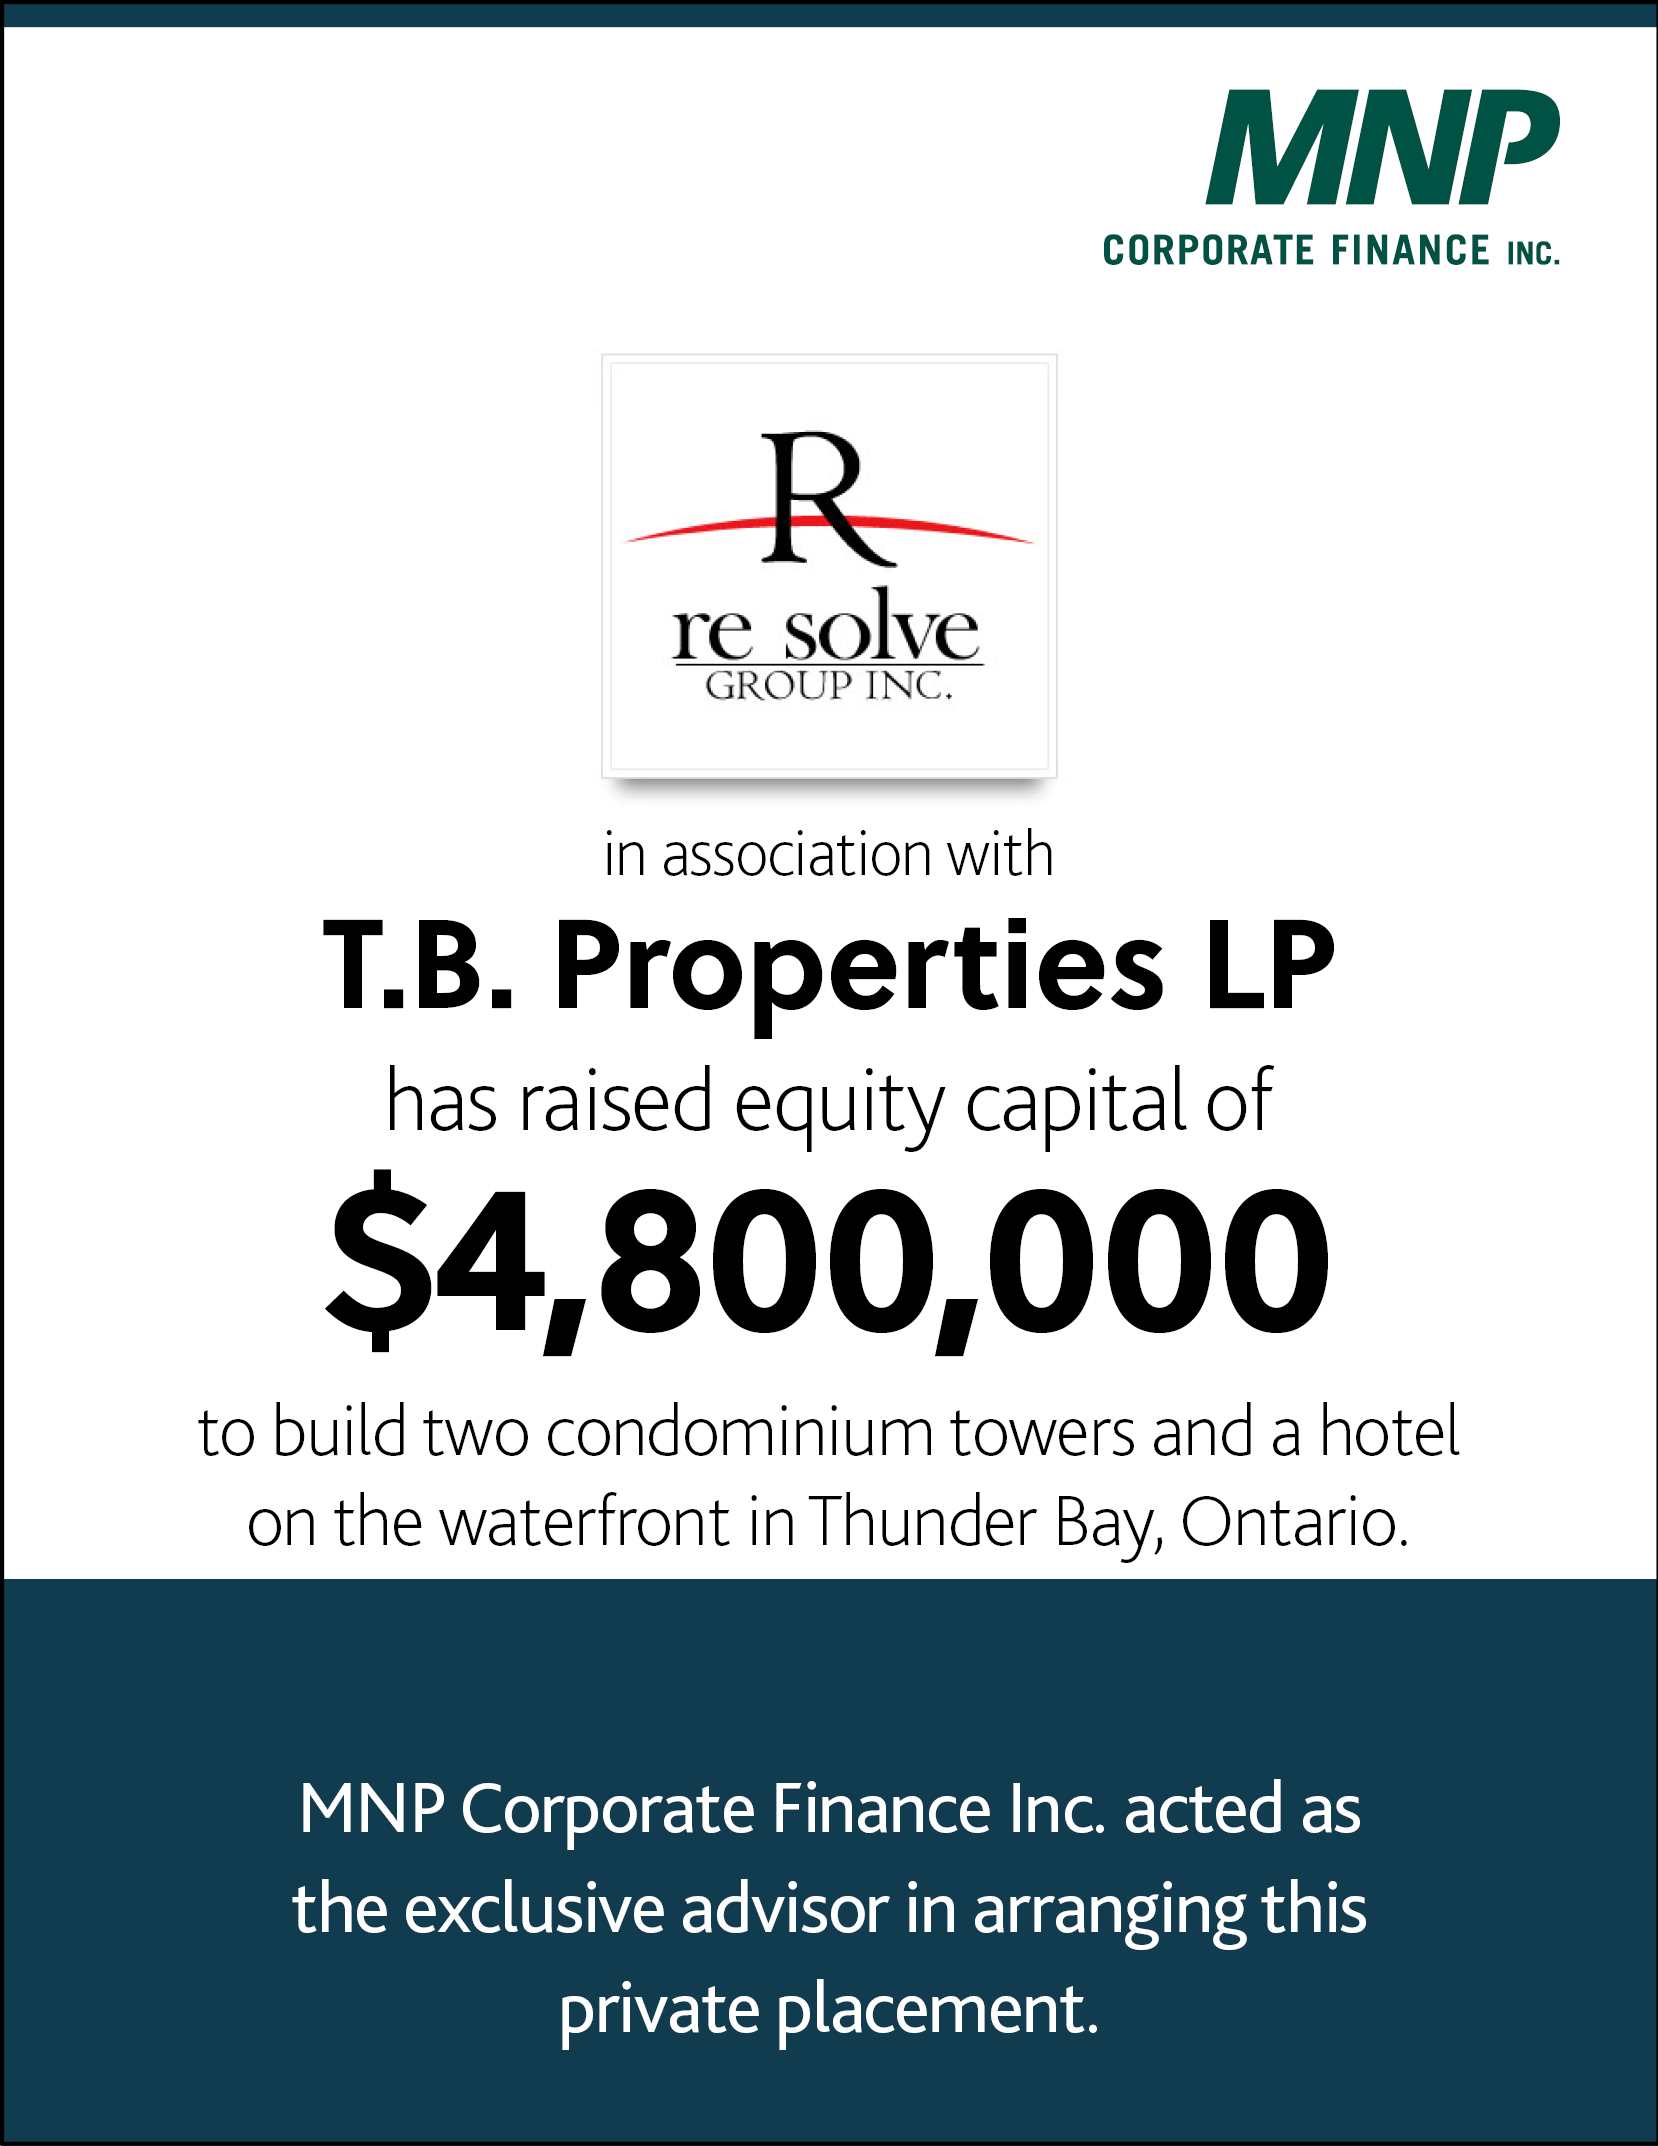 Resolve Group Inc in association with T.B. Properties LP has raised equity capital of $4,800,000 to build two condominium towers and a hotel on the waterfront in Thunder Bay, Ontario